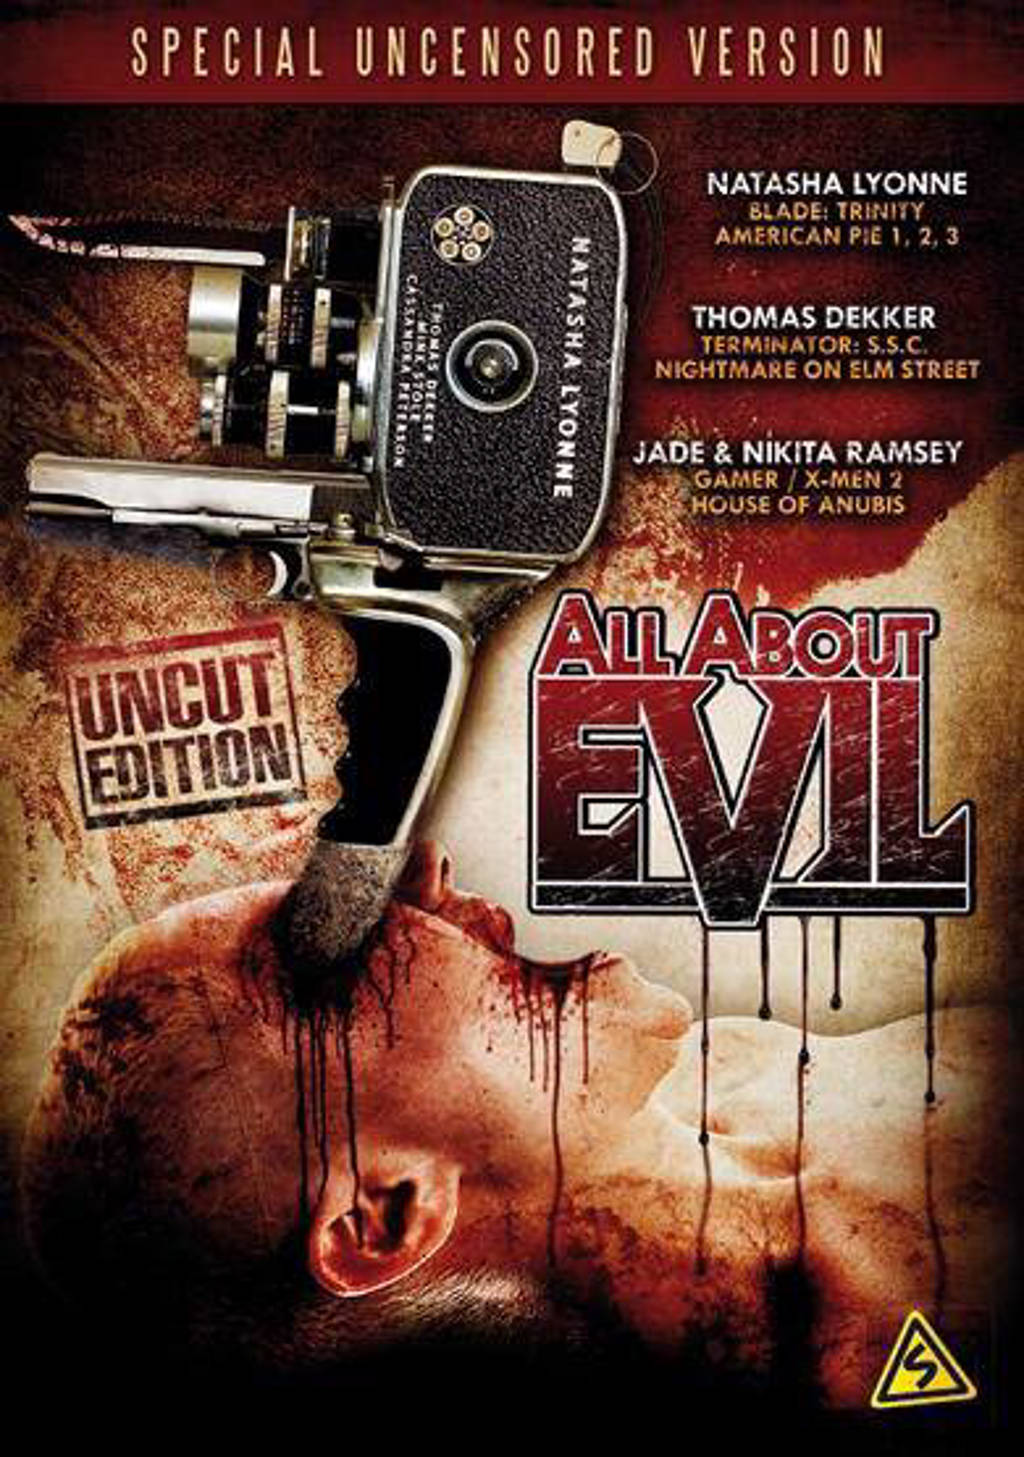 All about evil (DVD)